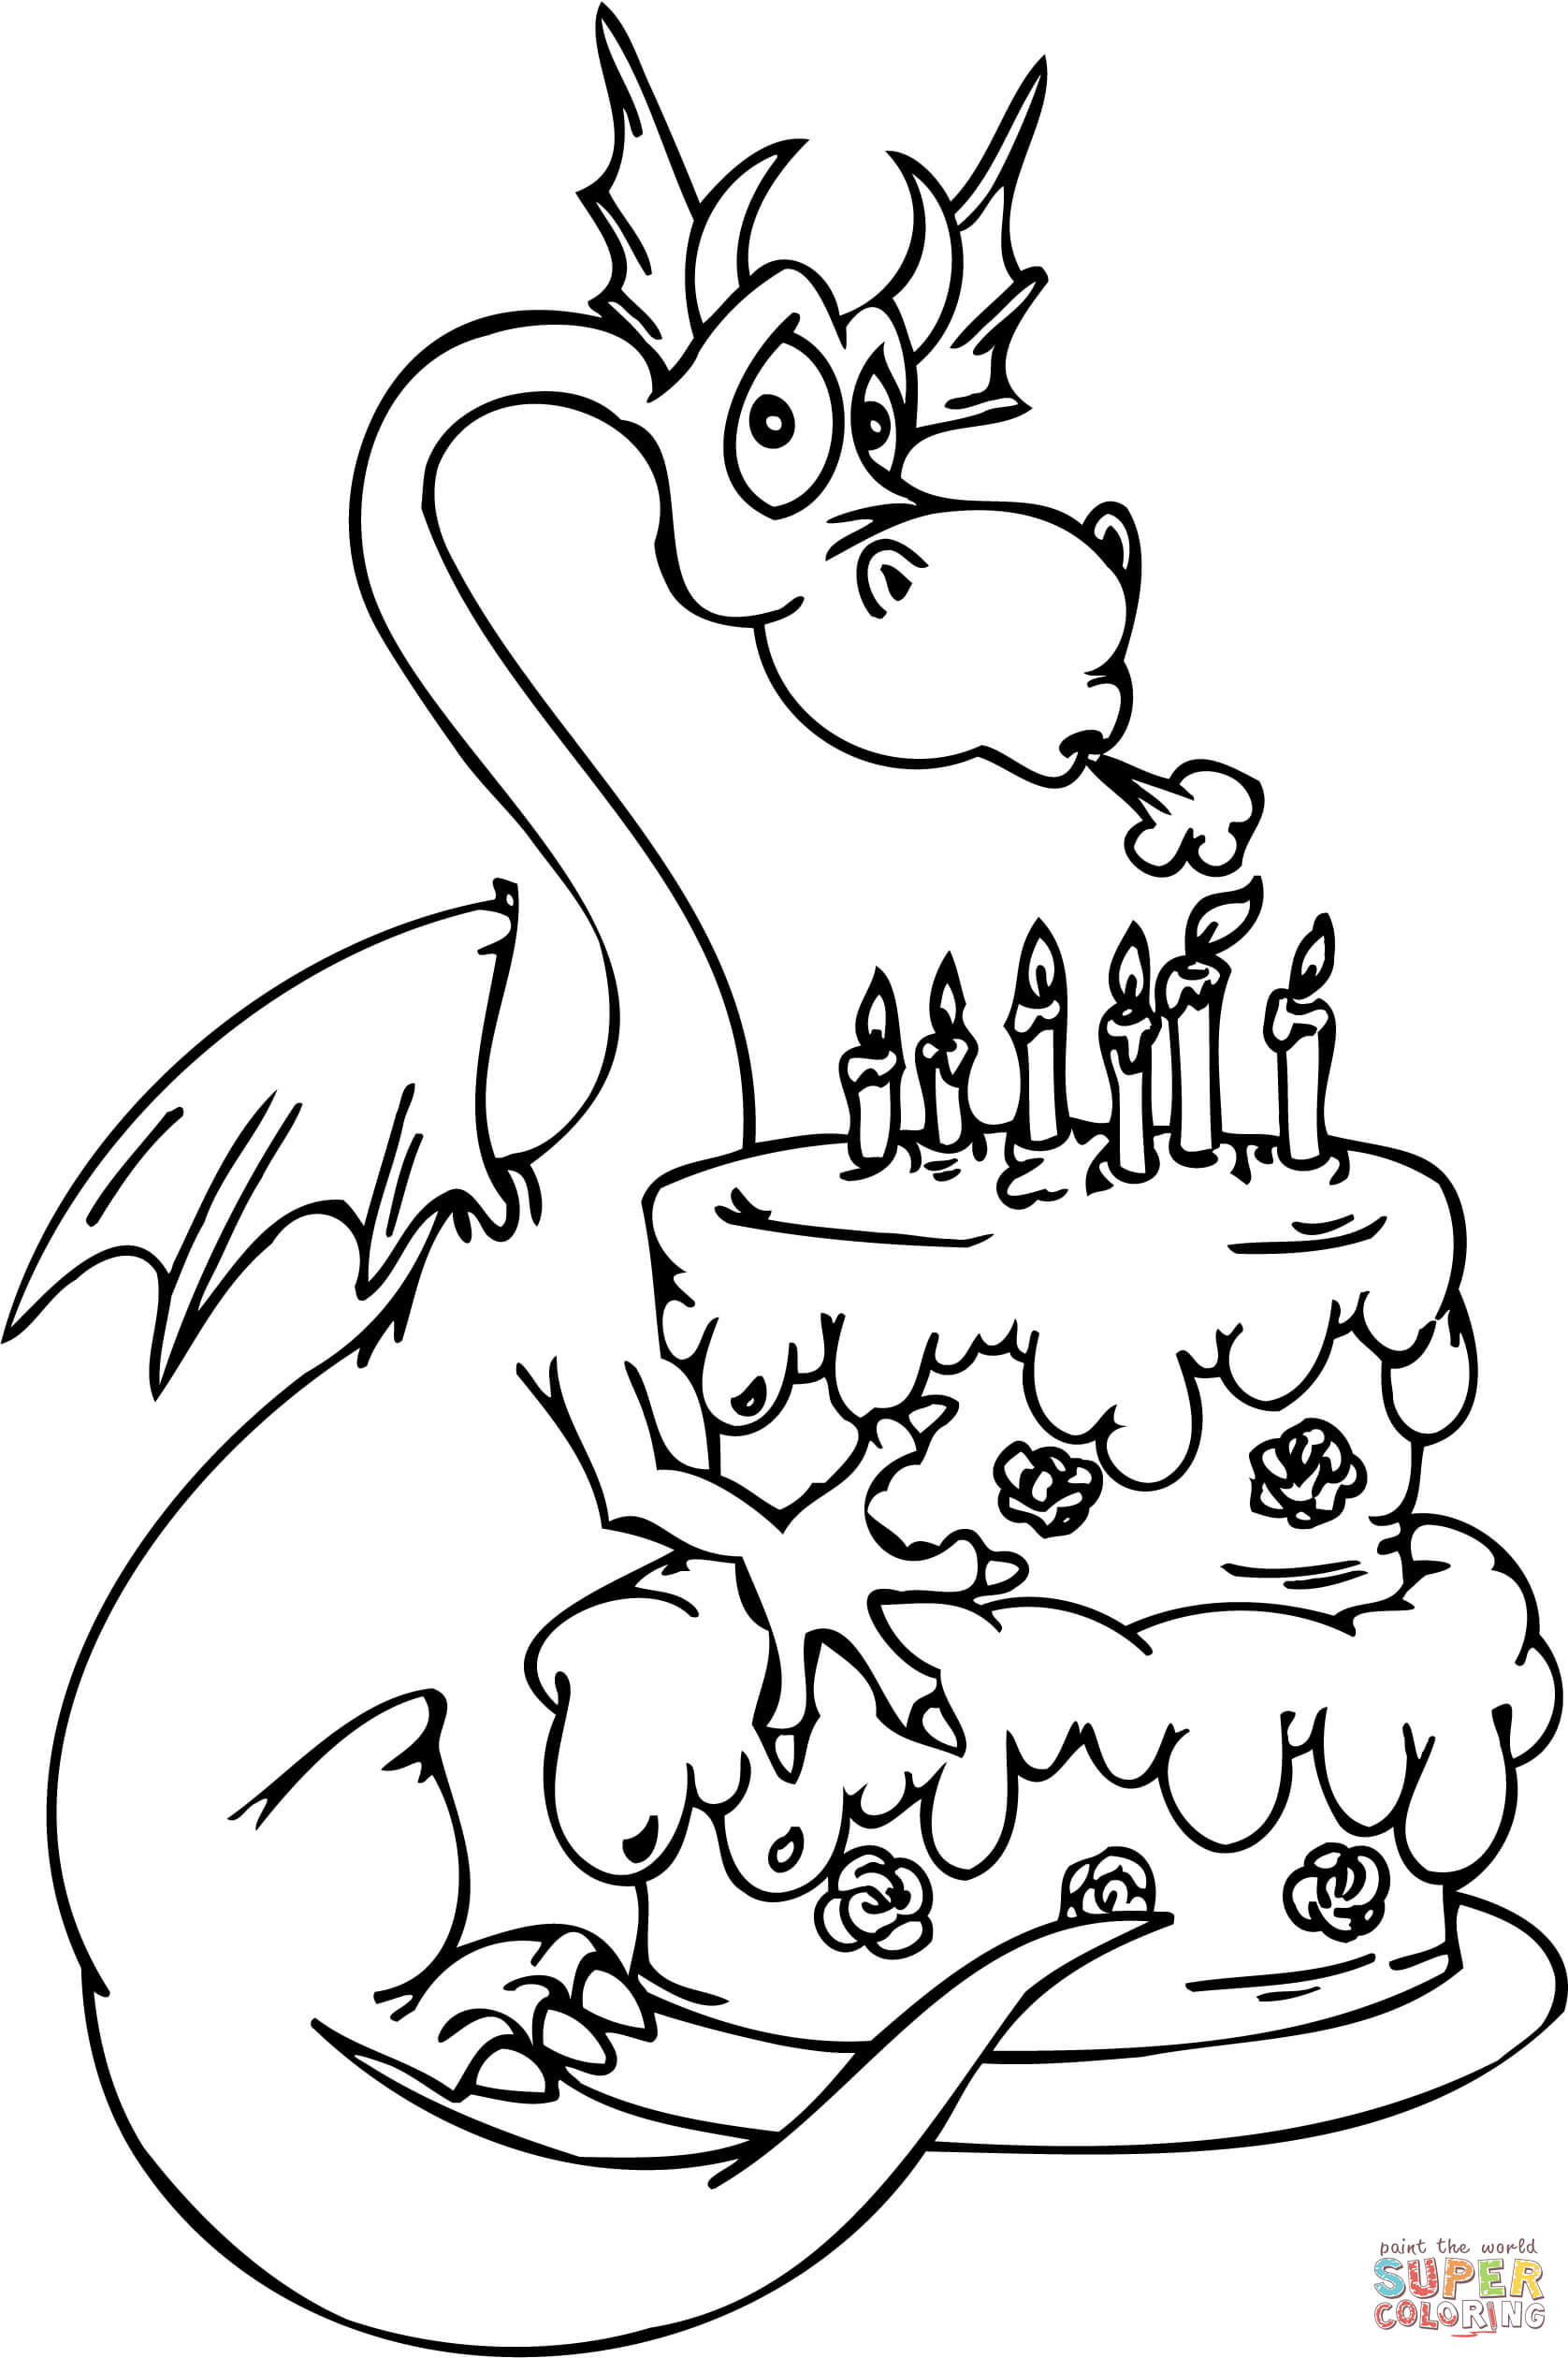 Drawing Cake Colour Dragon With Happy Birthday Cake Coloring Page Free